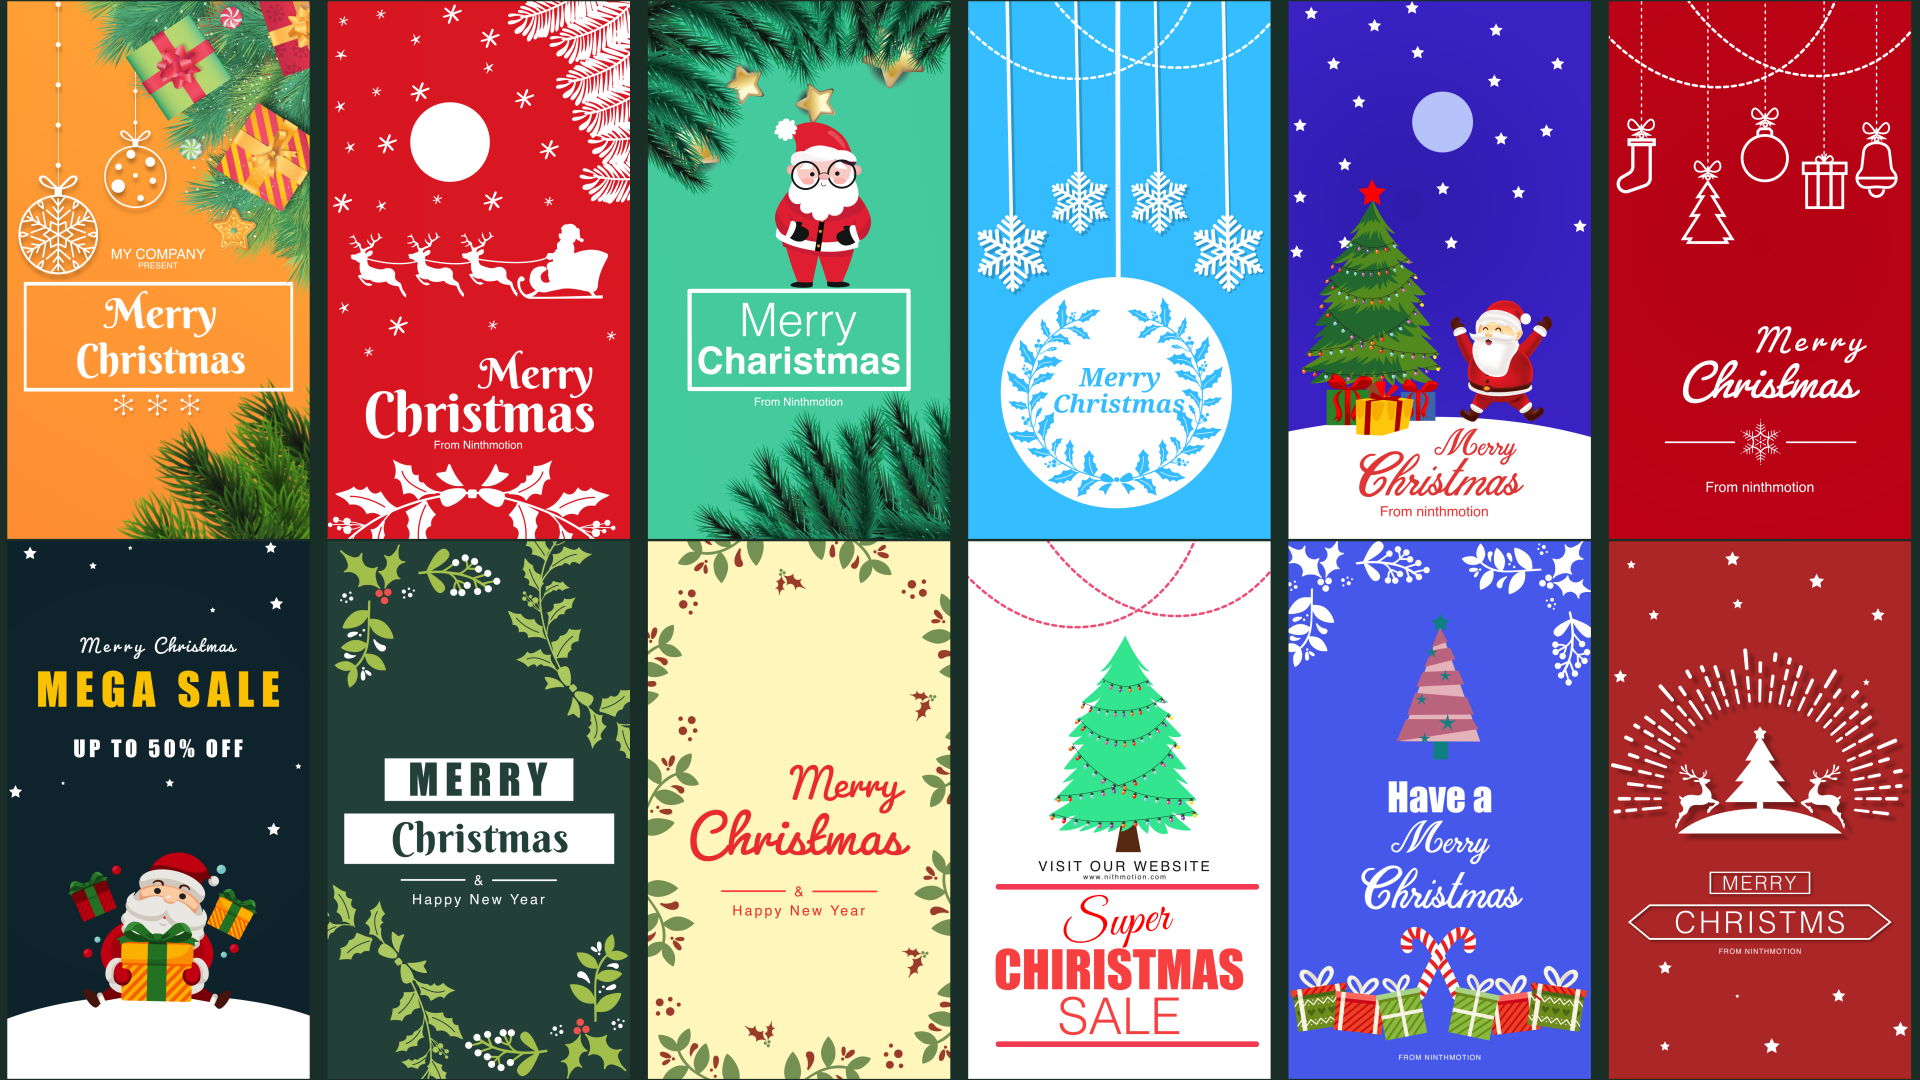 Christmas Instagram Story Pack by ninthmotion | VideoHive